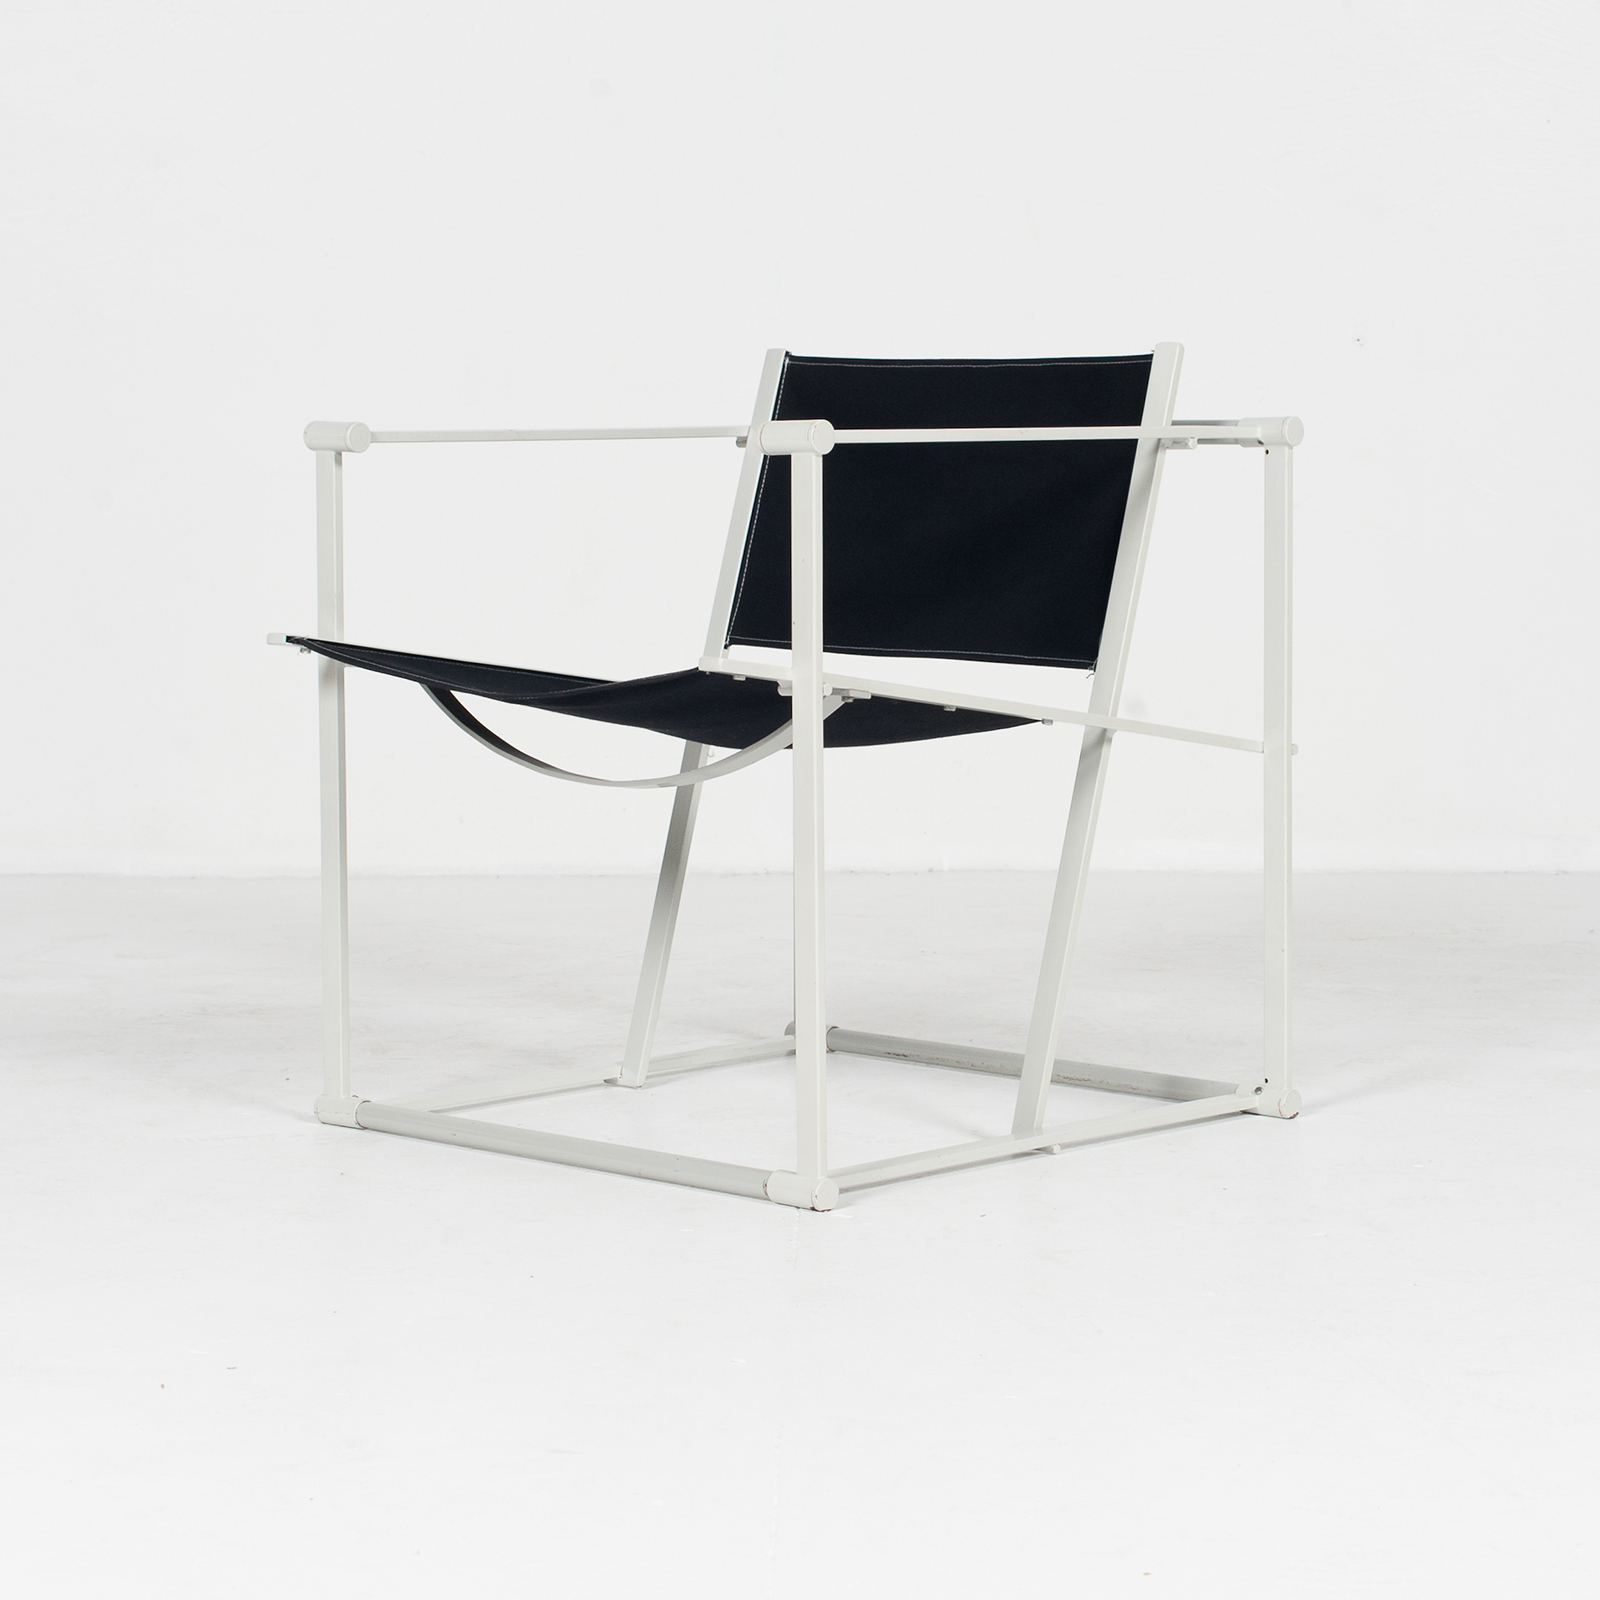 Model Fm60 Cubic Chair By Radboud Van Beekum For Pastoe In Black Canvas And Grey Frame, 1980s, The Netherlands34